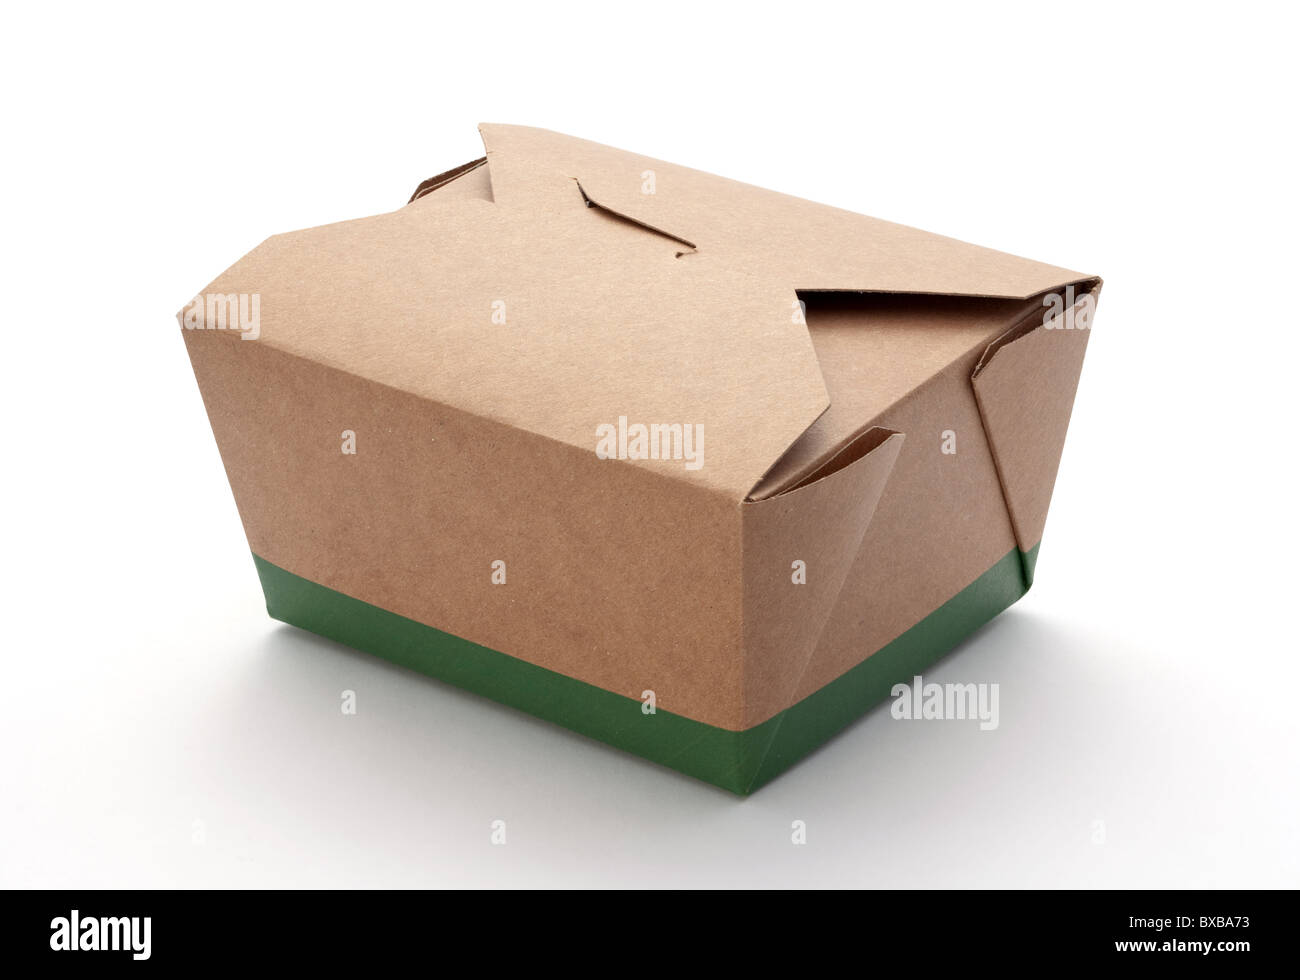 Take-Out Box isolated on a white background - Stock Image